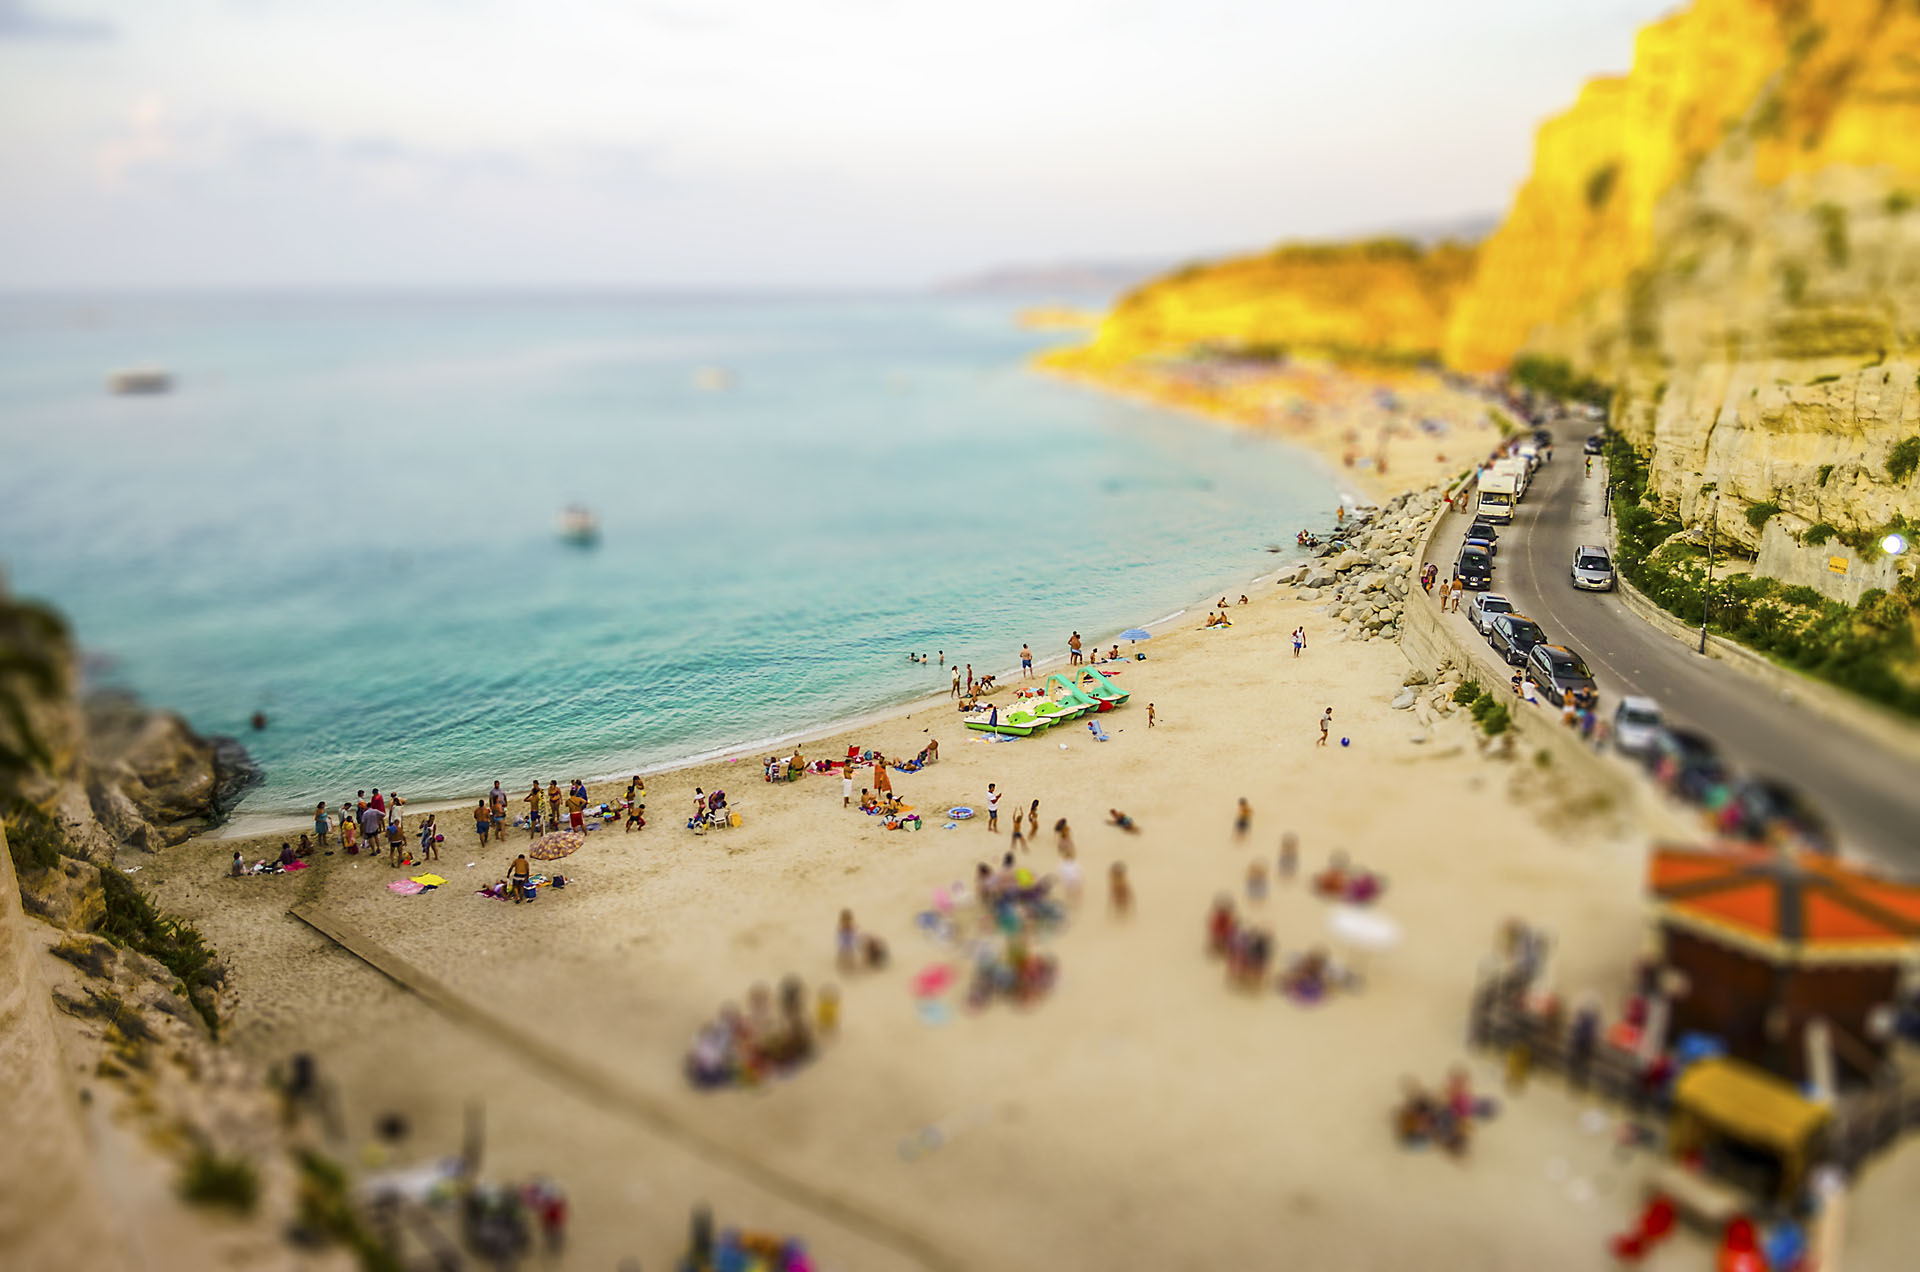 Aerial view of beach in Tropea, Italy. Tilt-shift effect applied